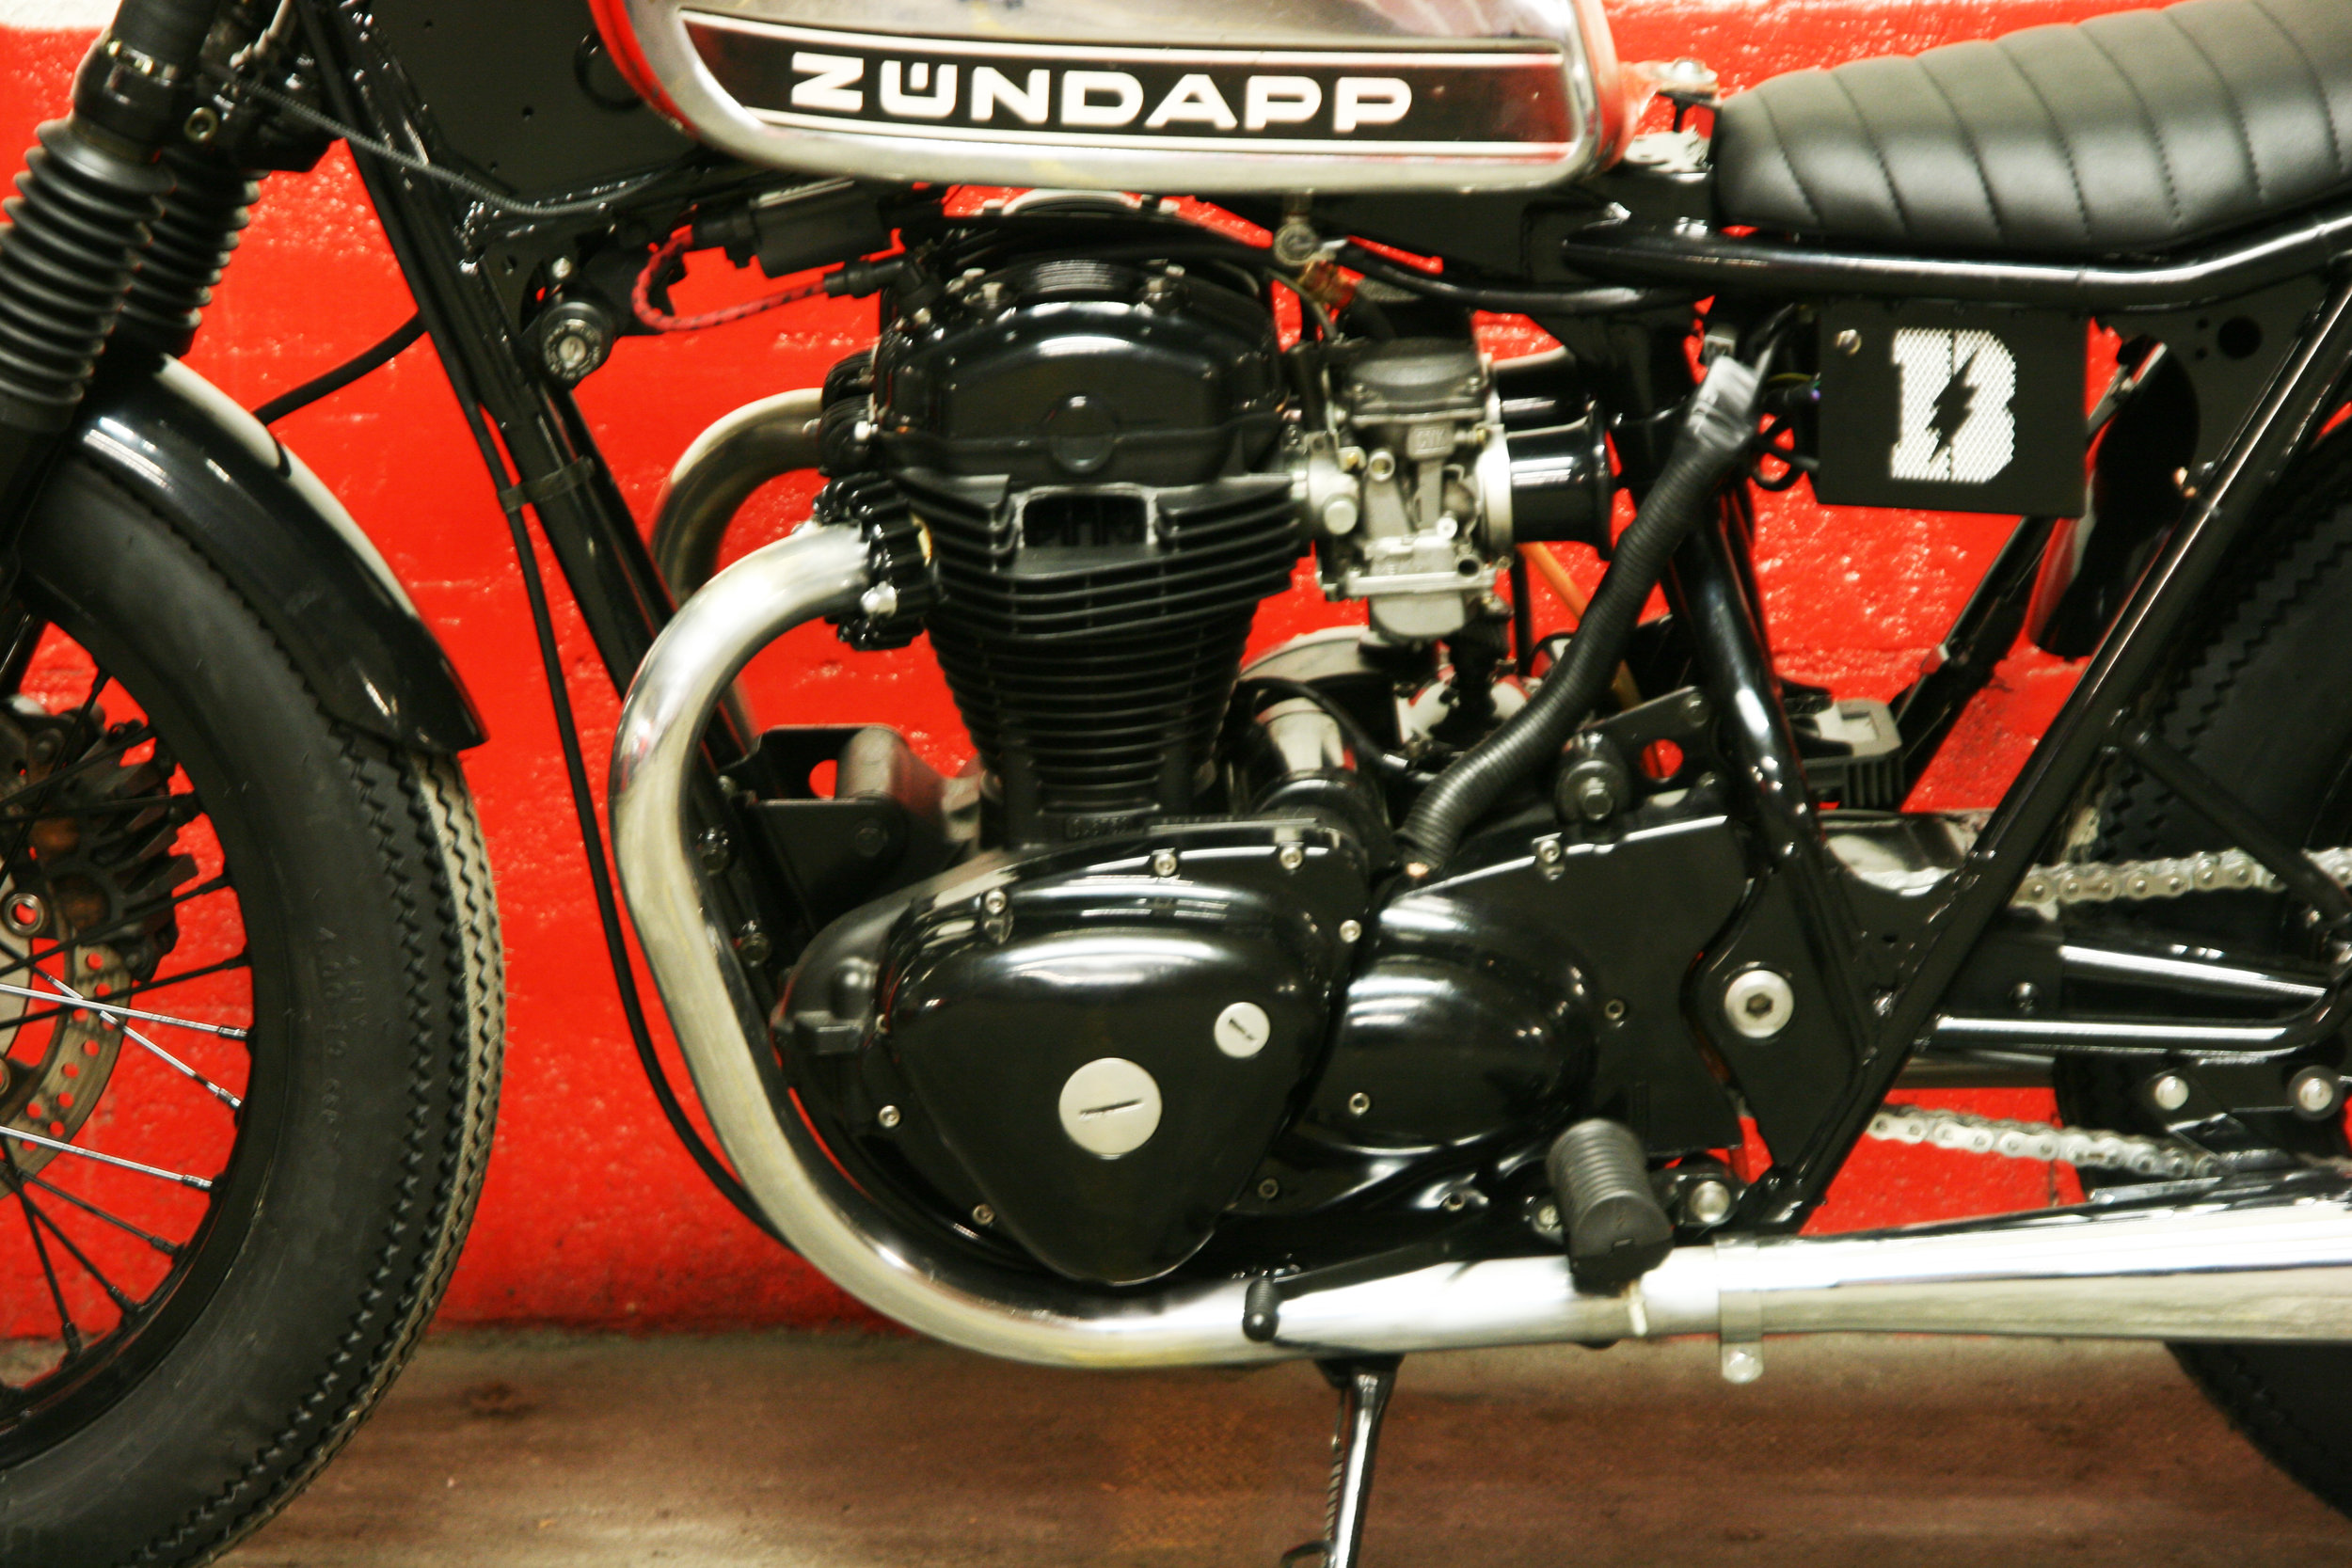 - alloy air filters installed on the re-jetted carburetors;  - fully shiny black powder coated painting of the frame + engine covers + wheels + fork legs + foot pegs + mudguards + handlebar;  - brand new chain + sprocket kit.